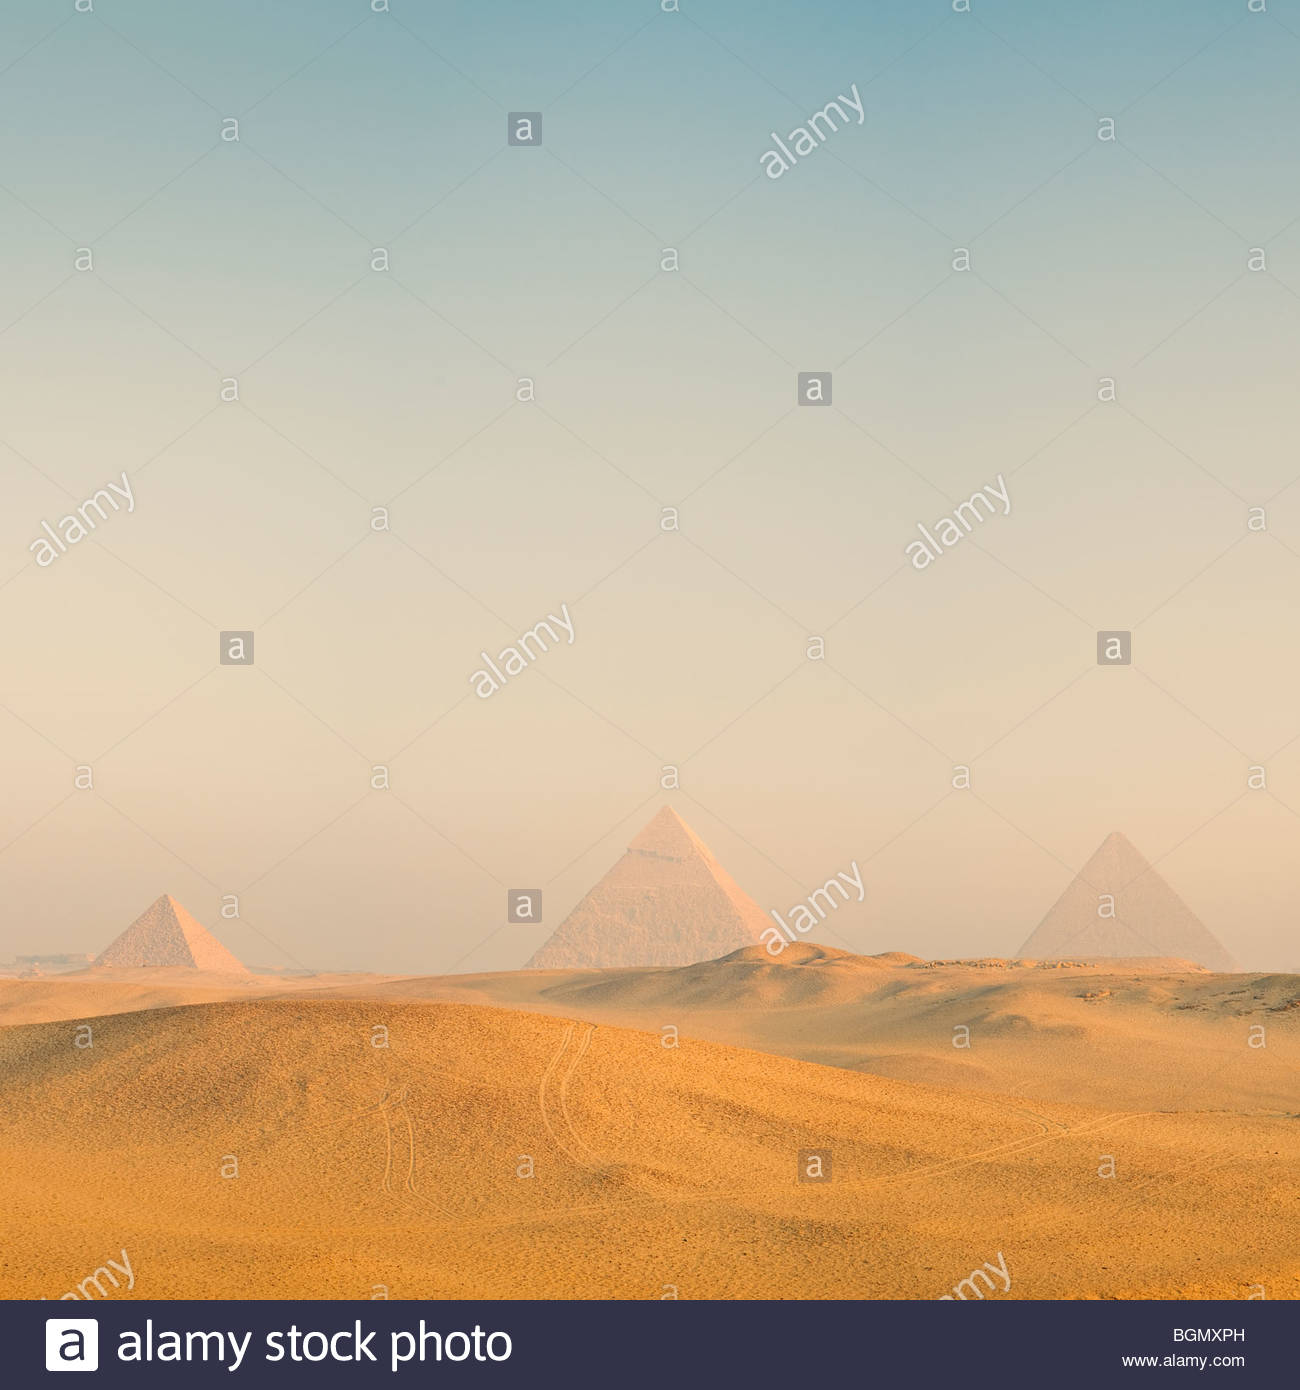 The Great Pyramids of Giza at sunrise, Cairo, Egypt. - Stock Image